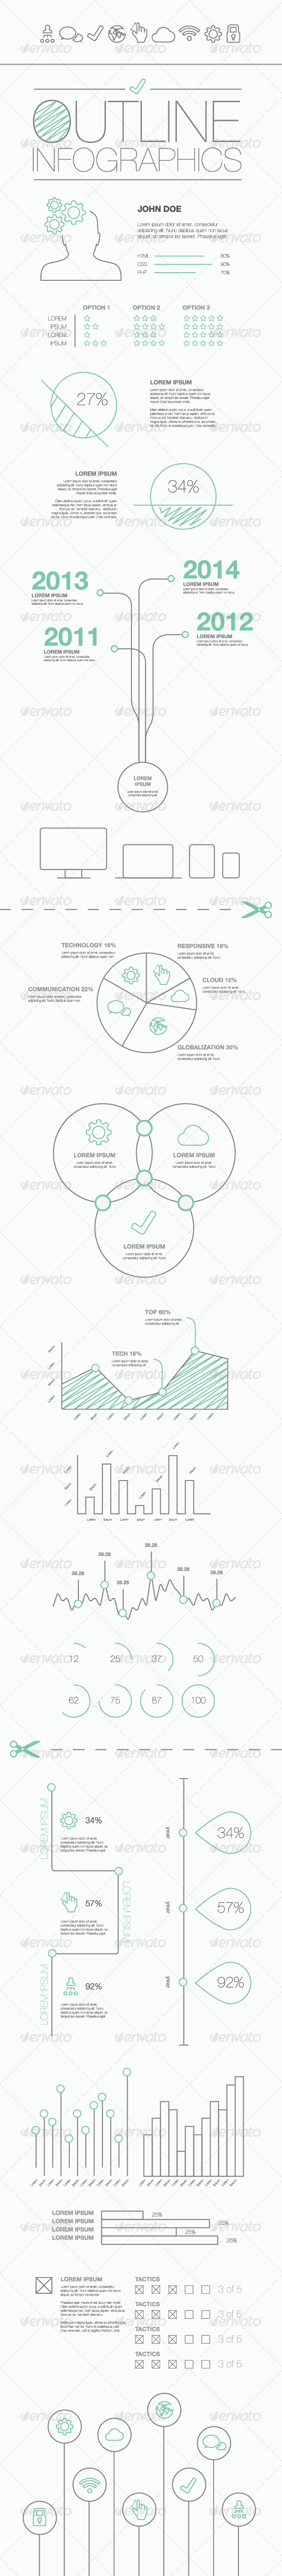 Outline Infographics Vector Illustration - Infographics